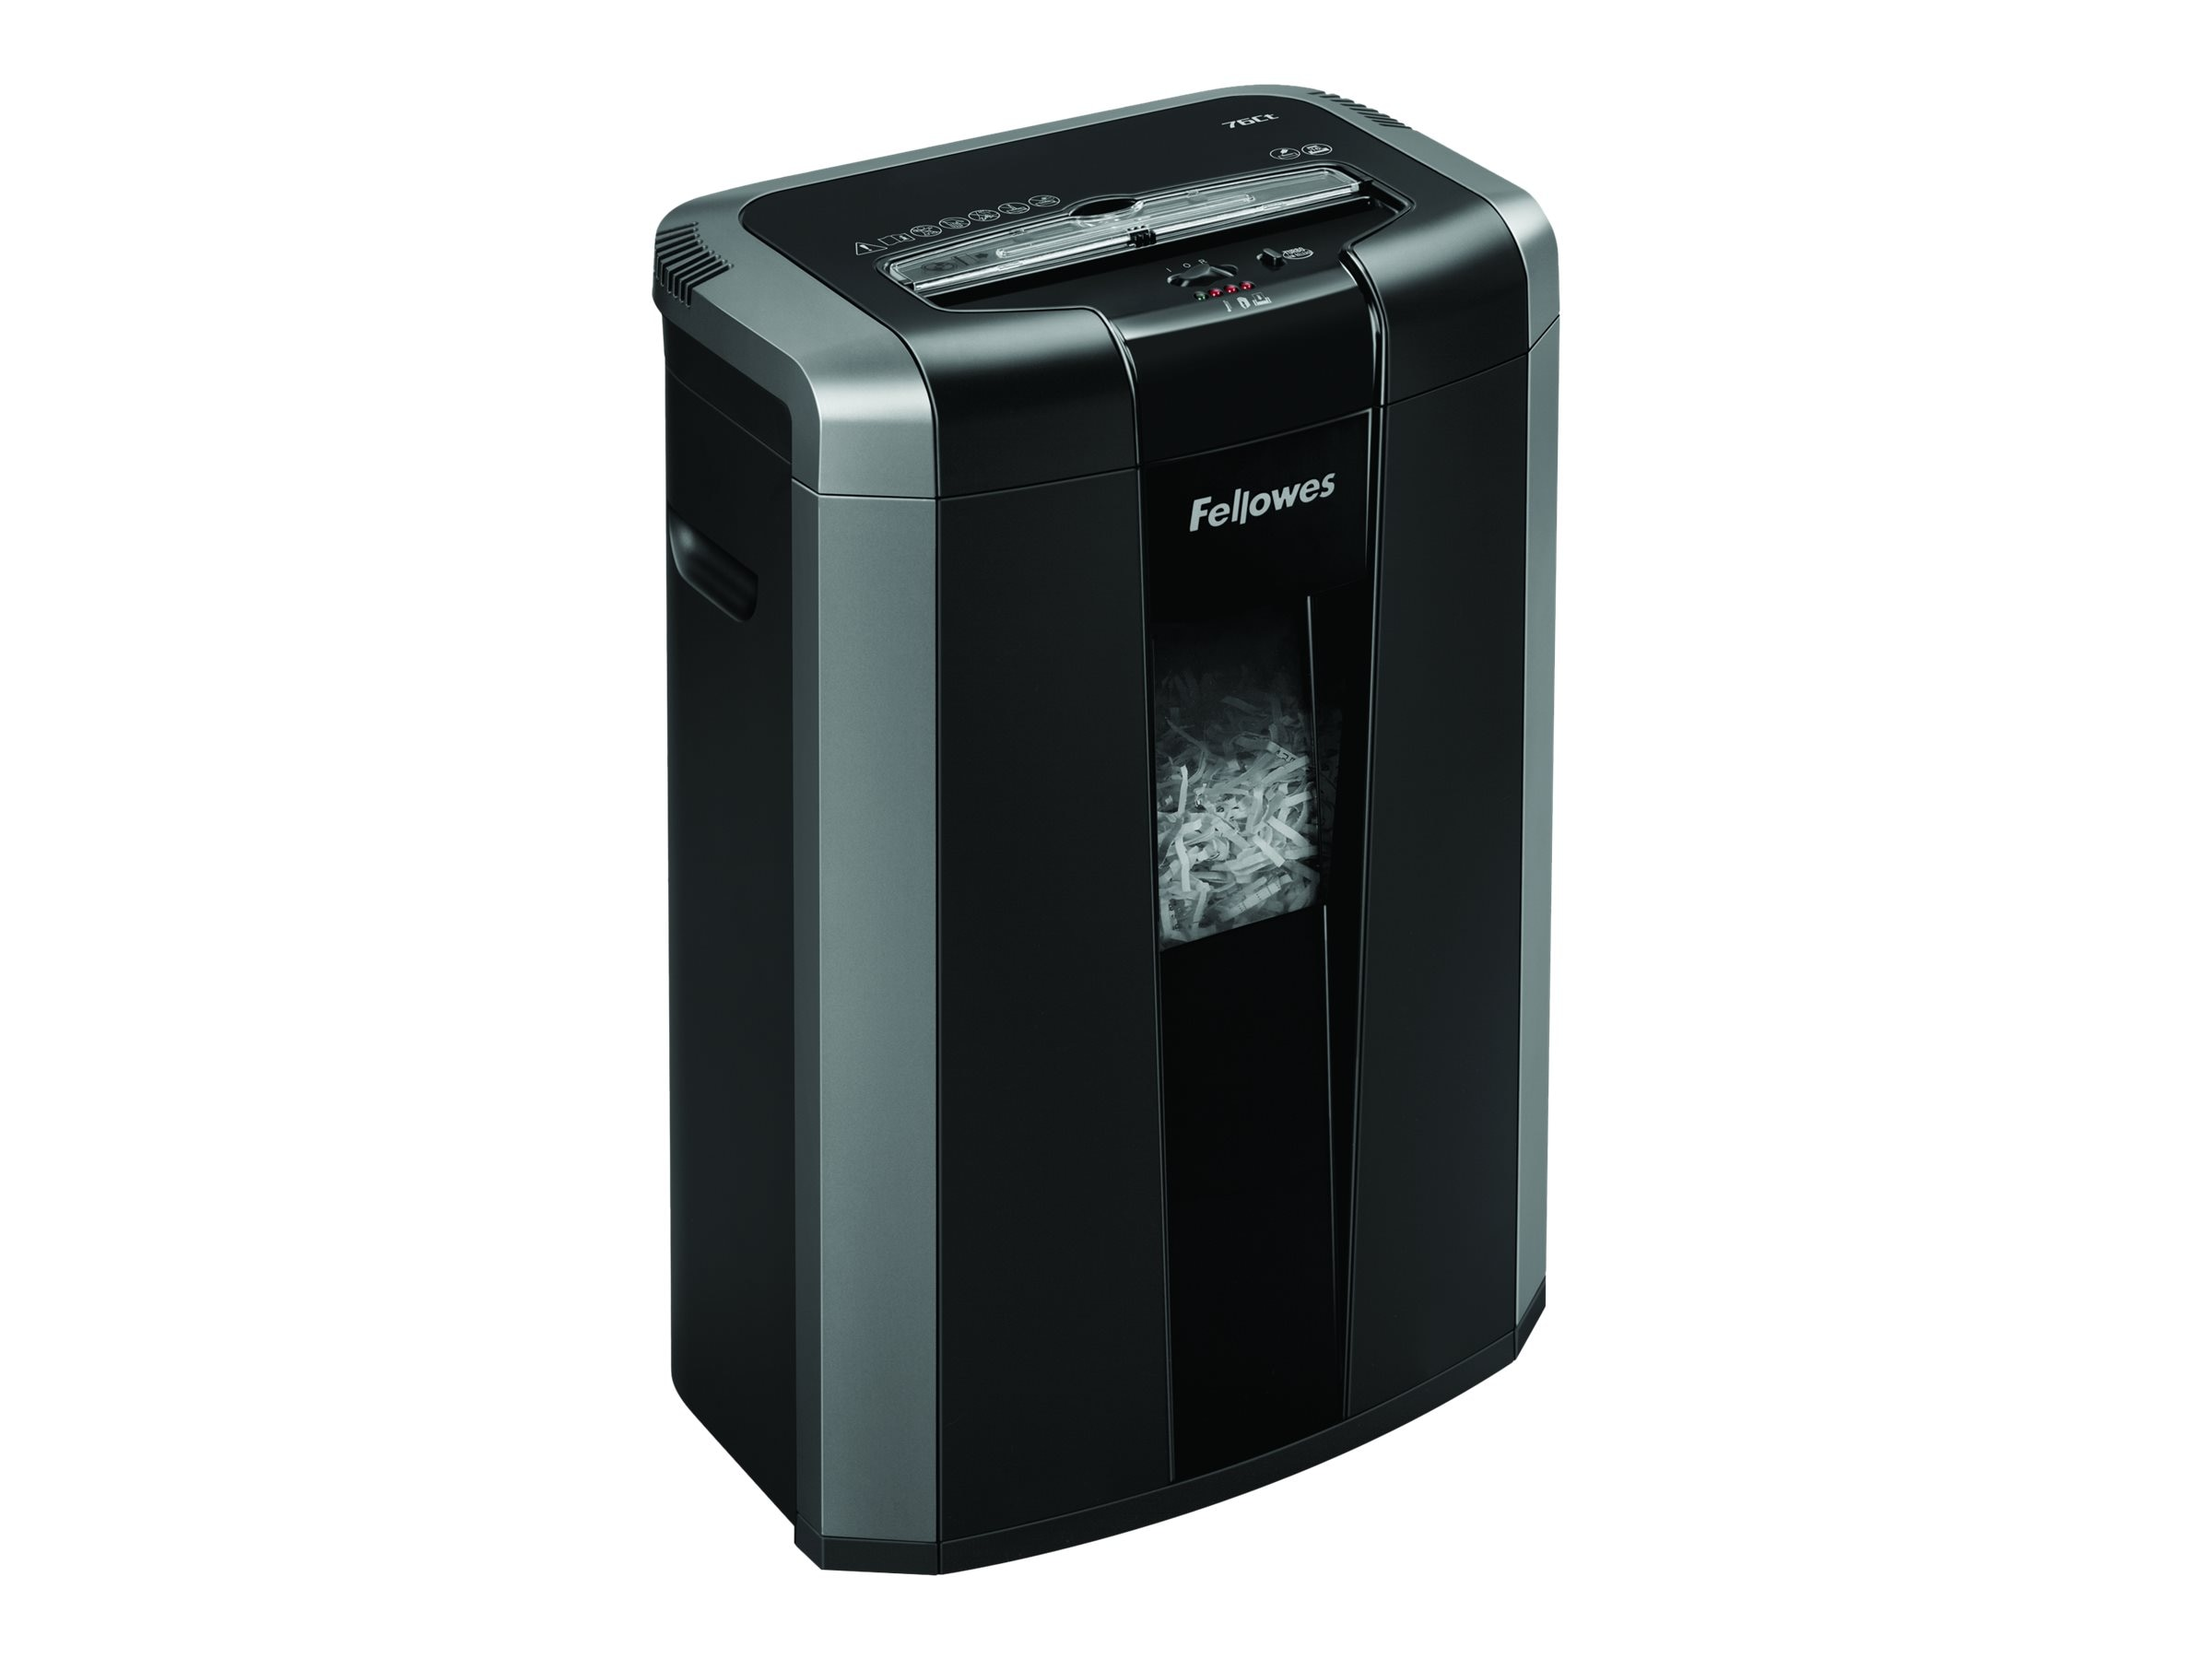 Fellowes 4676001 Image 3